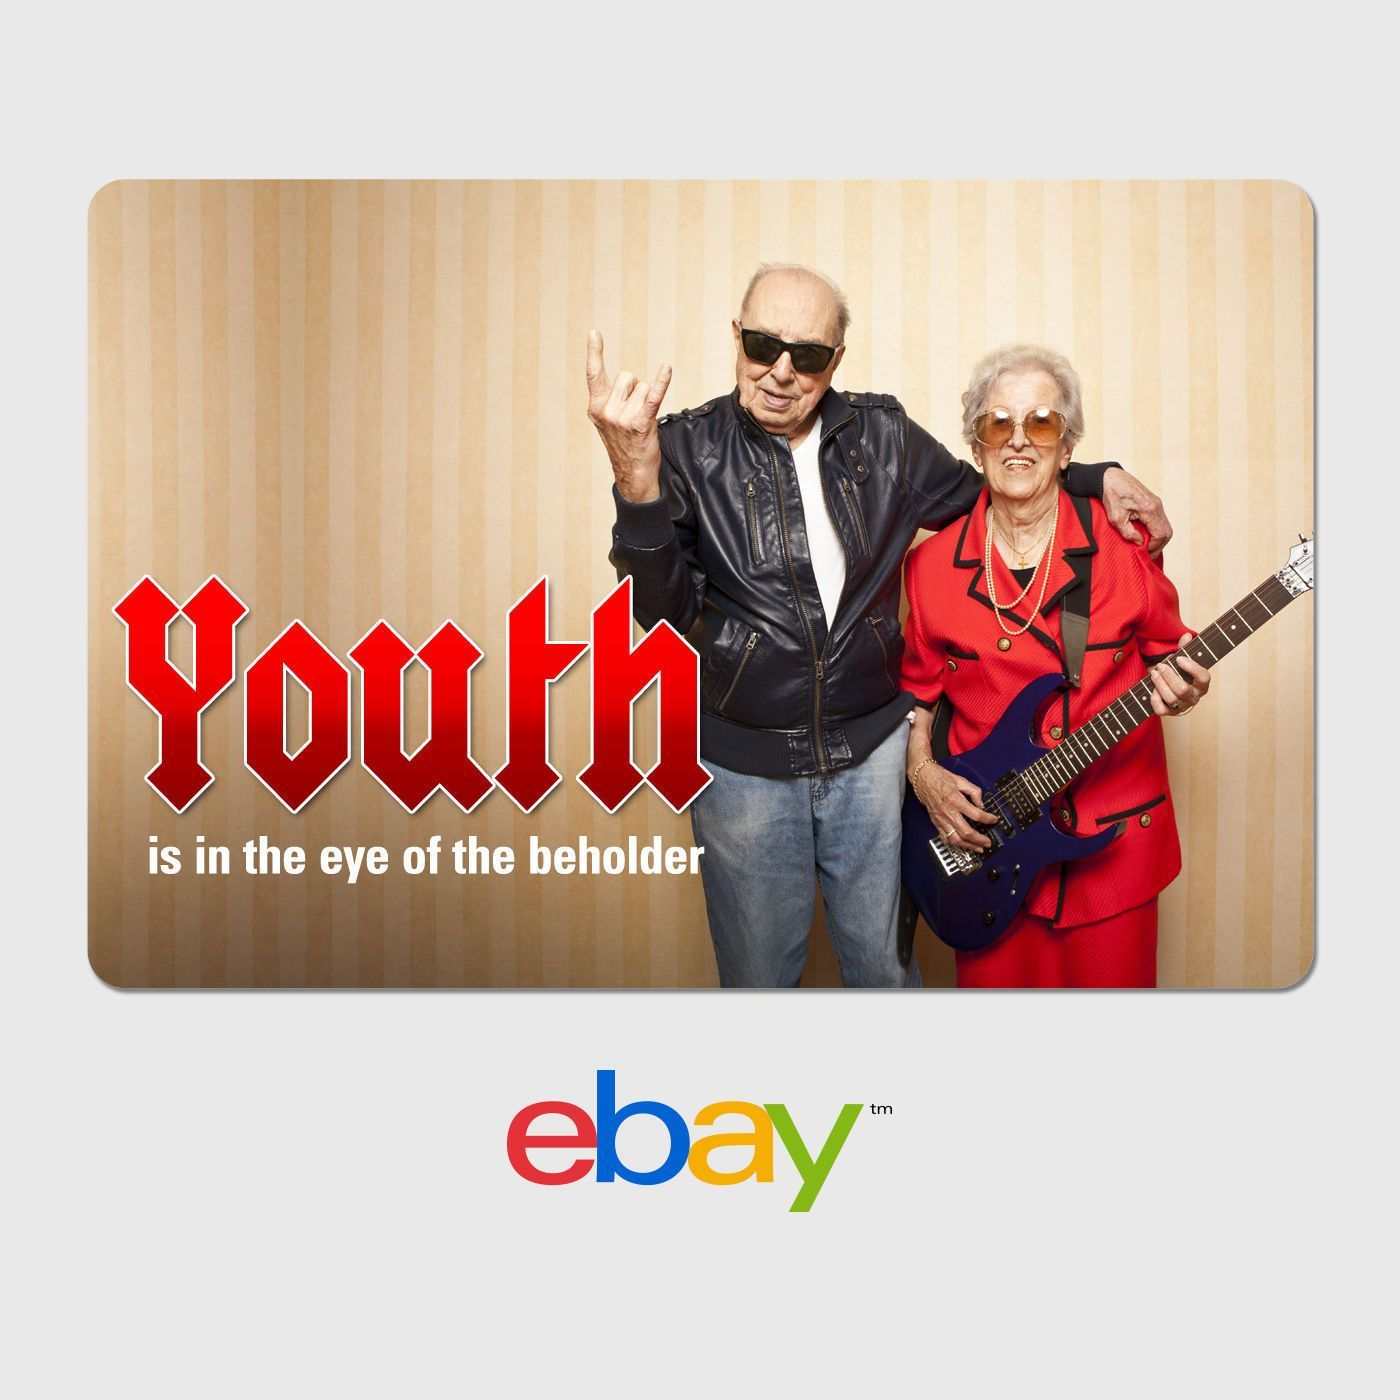 Awesome EBay Digital Gift Card Happy Birthday Youth Is In